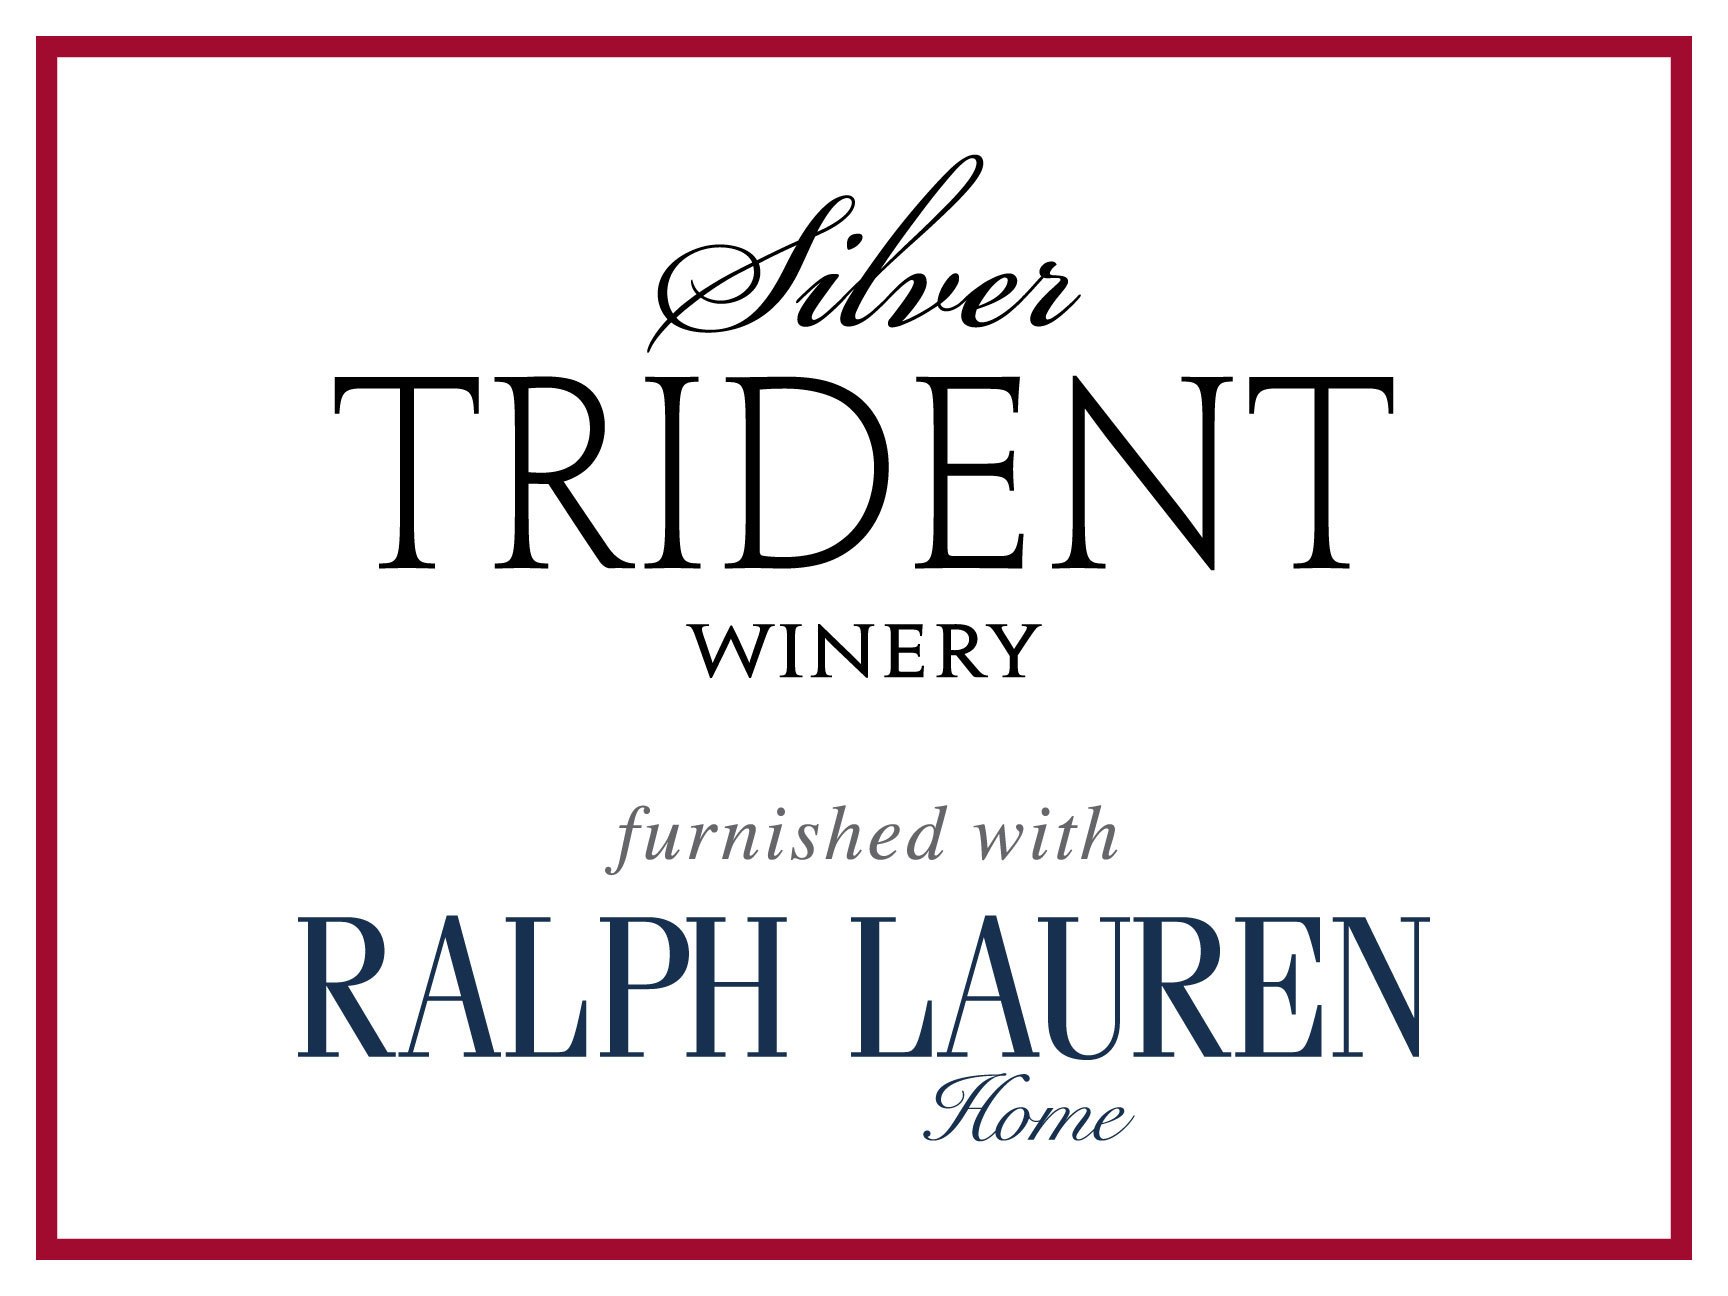 logo of Silver Trident Winery